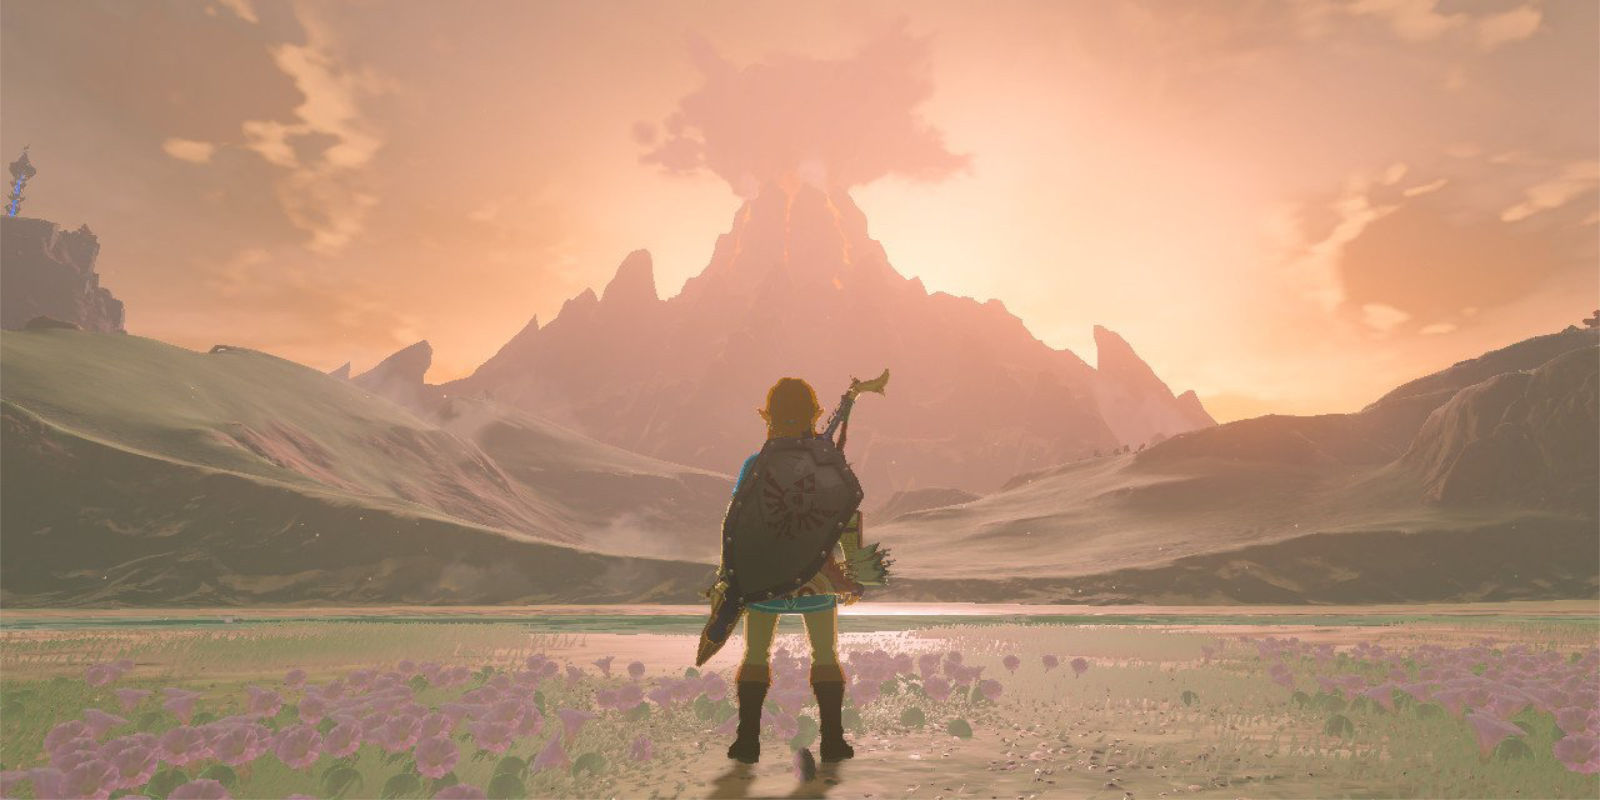 The sun sets behind the distant Death Mountain, and Link's body is silhouette against the fading, coral light of the sun.